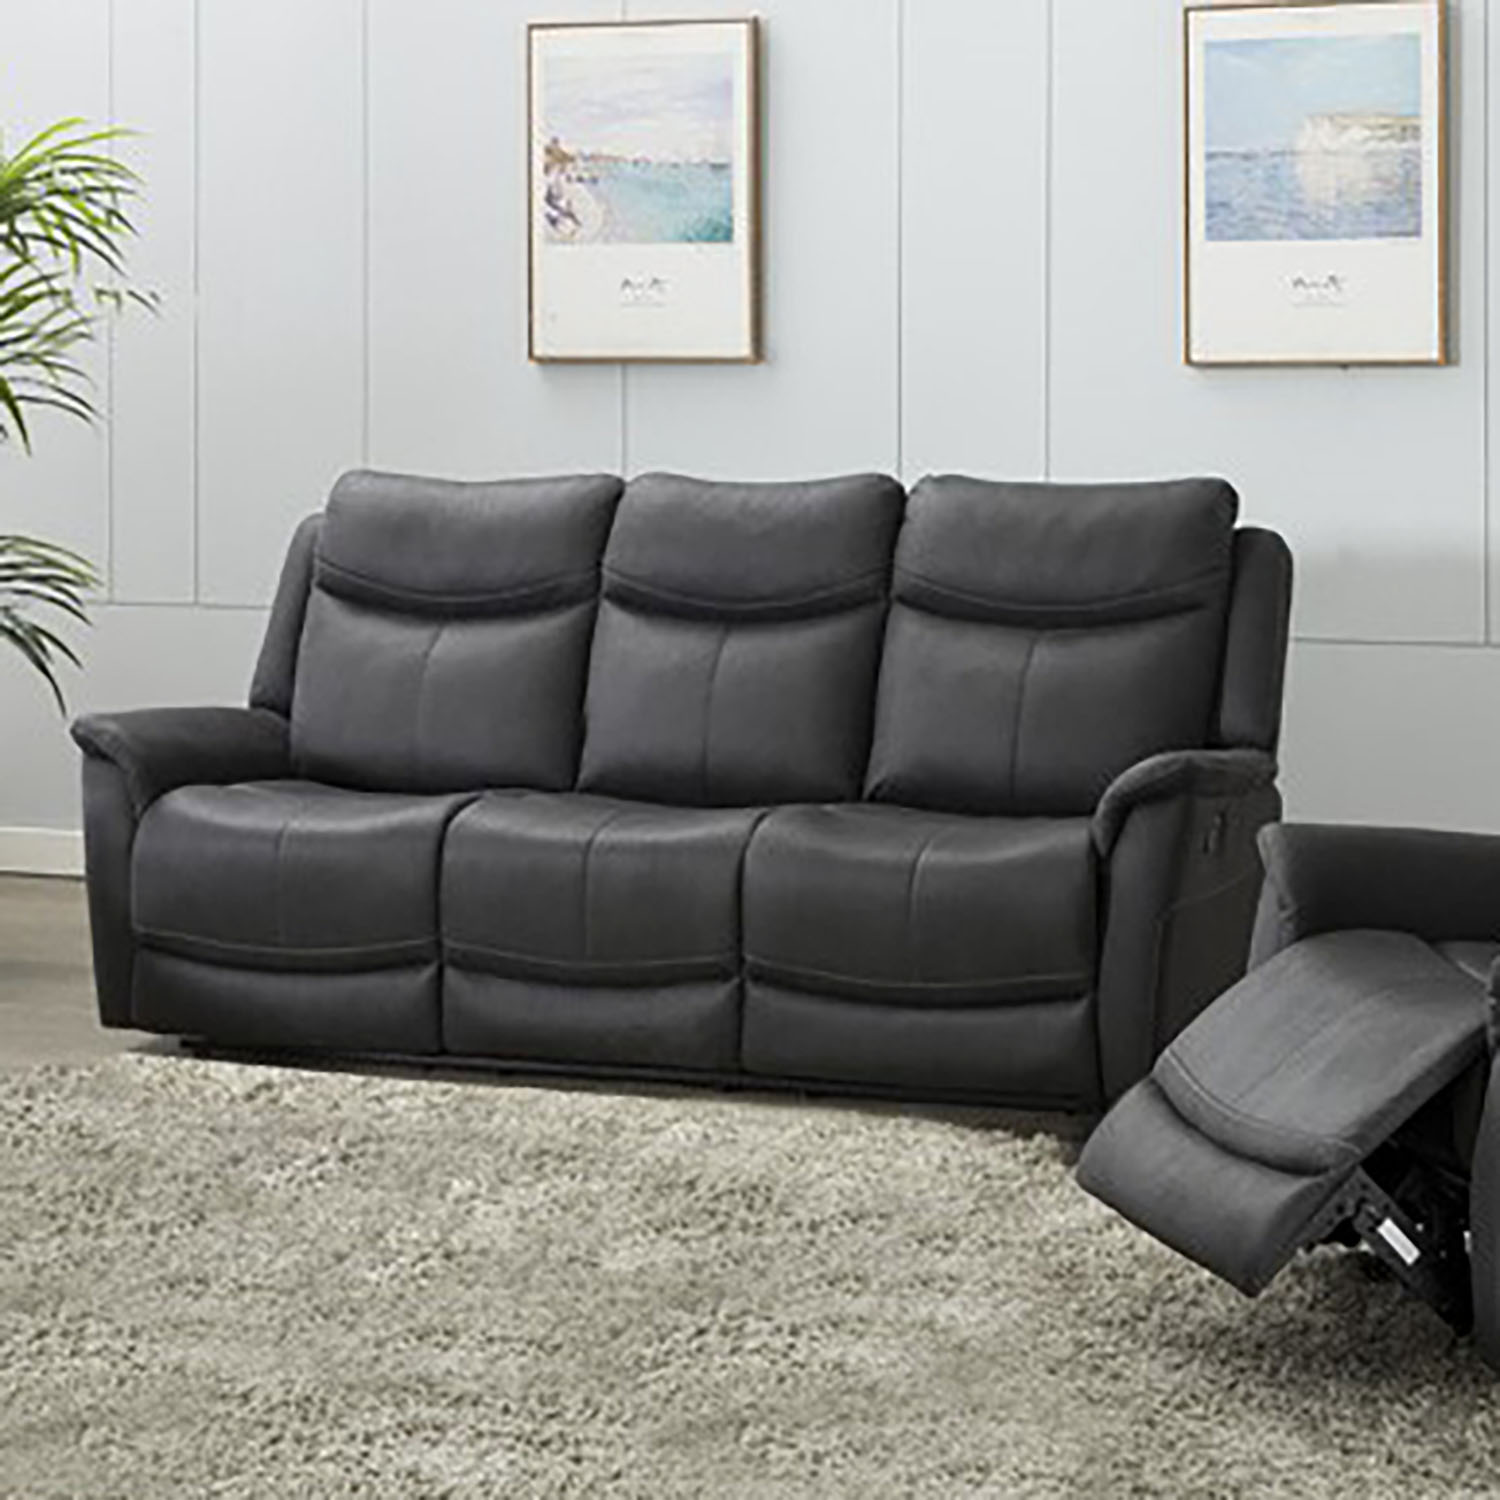 Ancona 3 Seater Manual Recliner - Slate